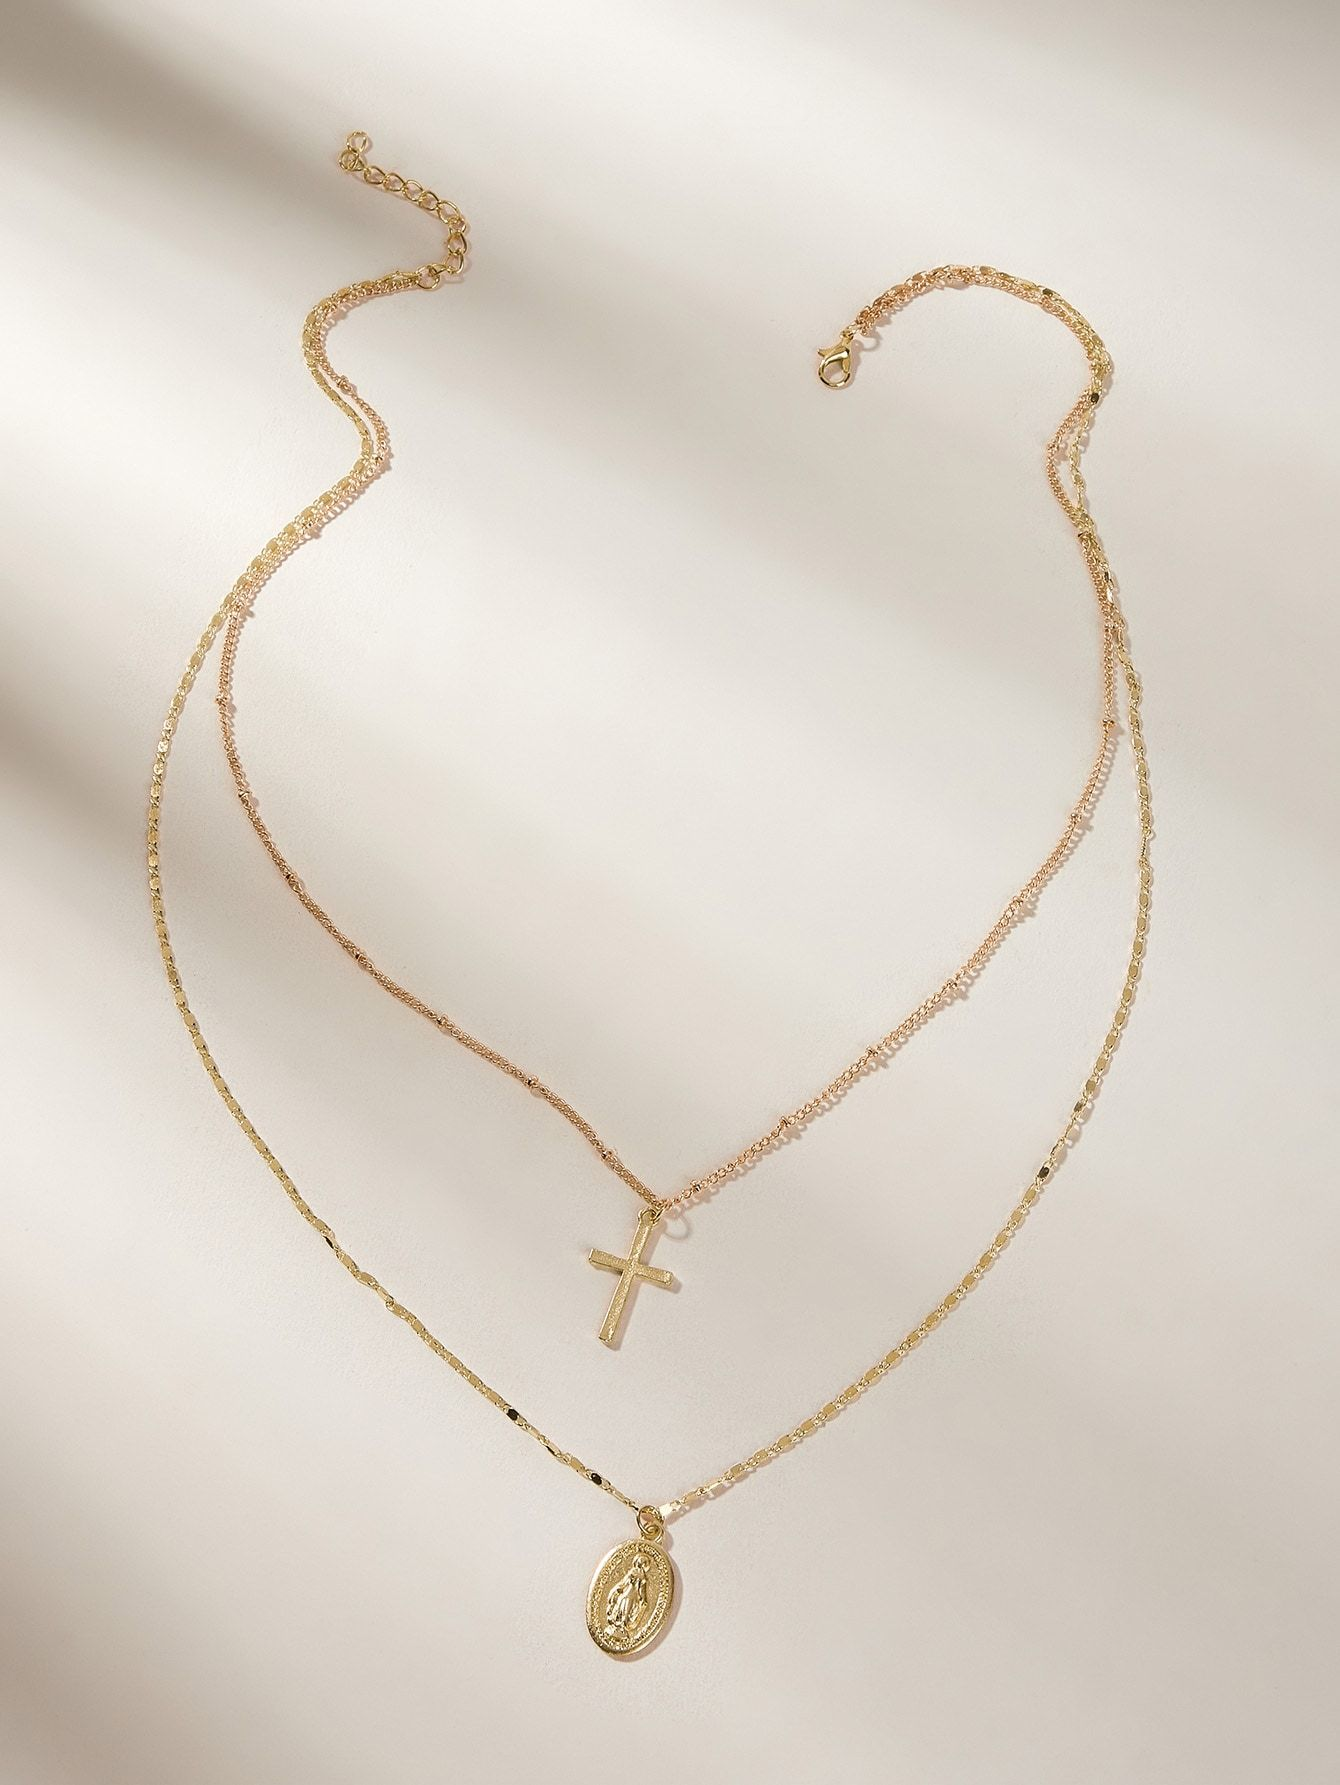 Star Pendant Double Layered Chain Necklace 1pc